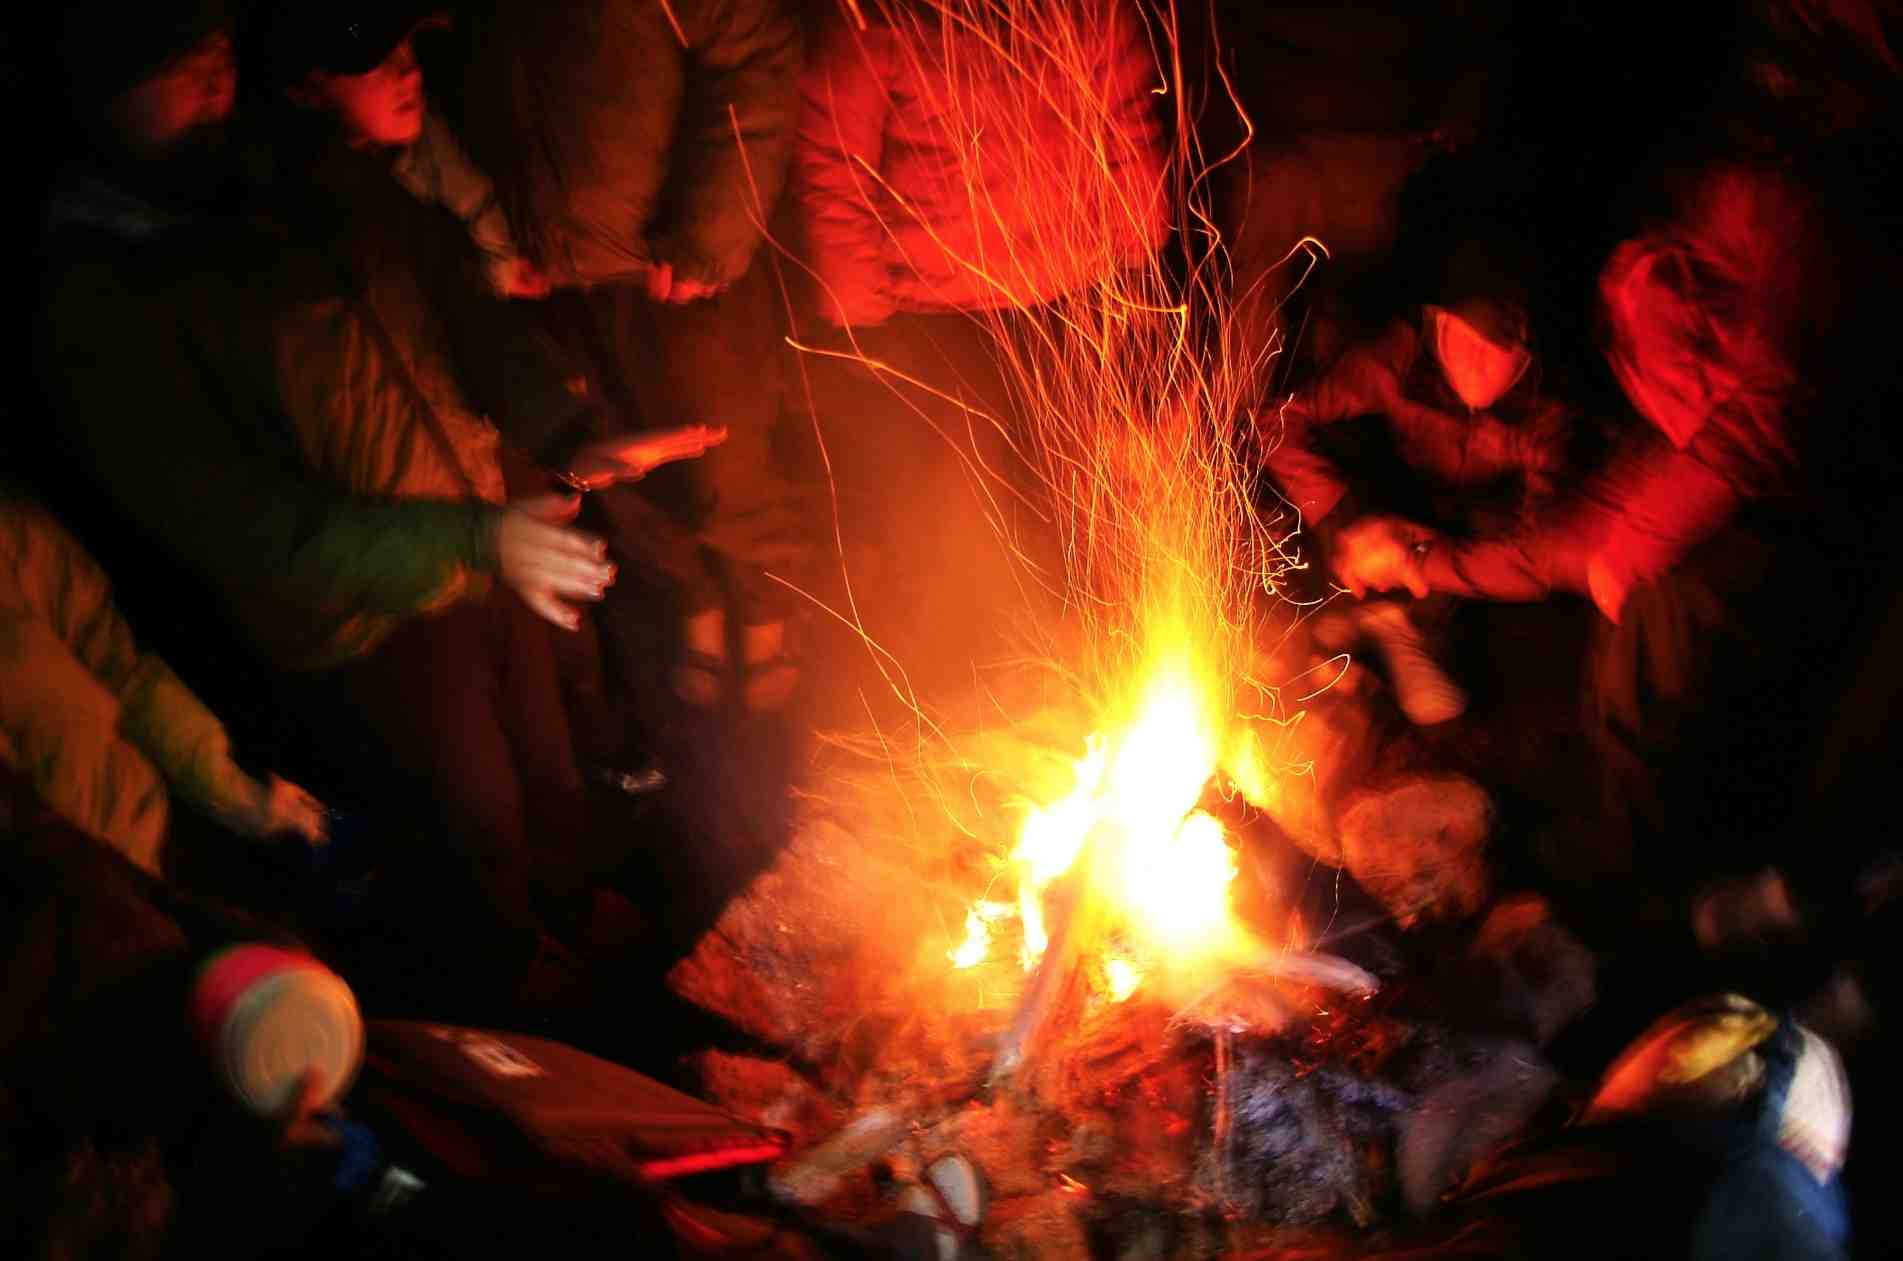 how god guides us campfire stories for the exodus 40 pillar of fire